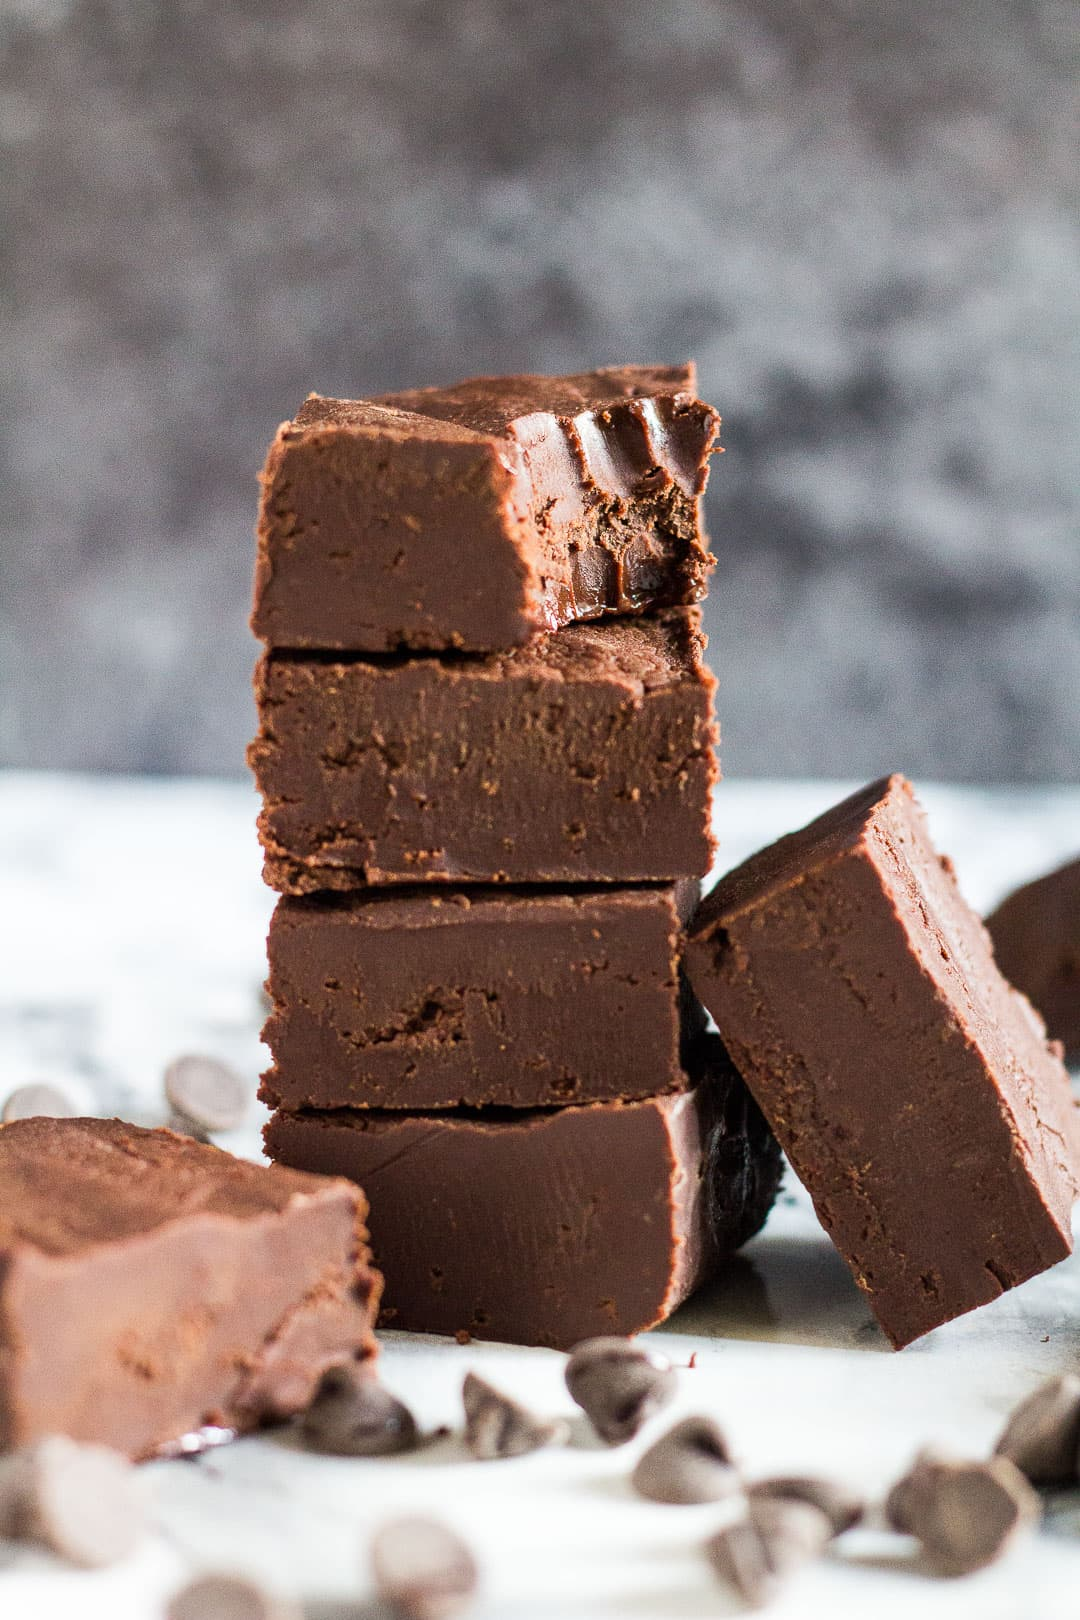 A stack of thick pieces of chocolate fudge with a bite taken out of the top piece.